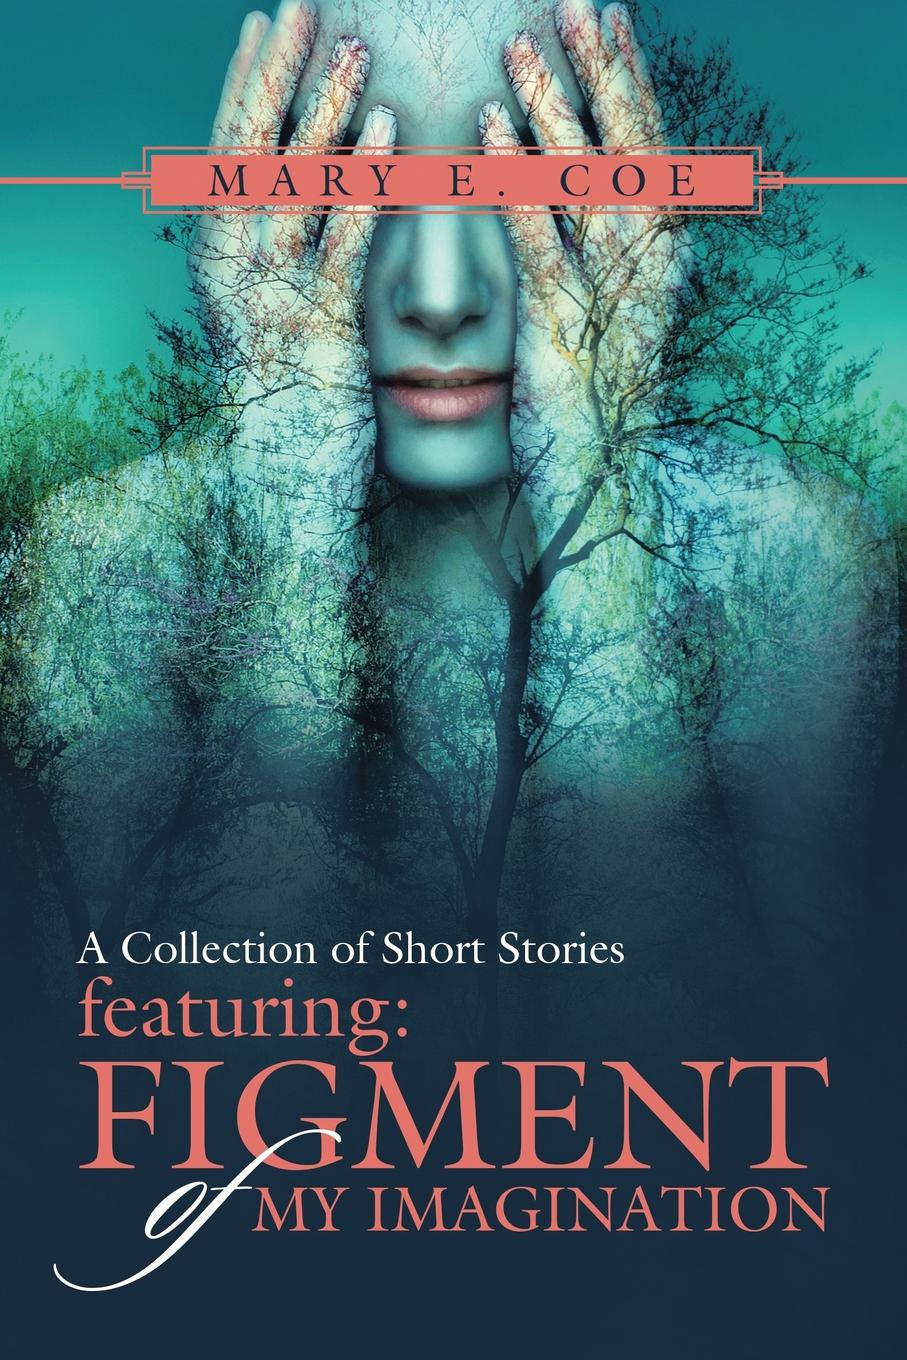 Mary E. Coe A Collection of Short Stories - Featuring. Figment of My Imagination journey into imagination with figment